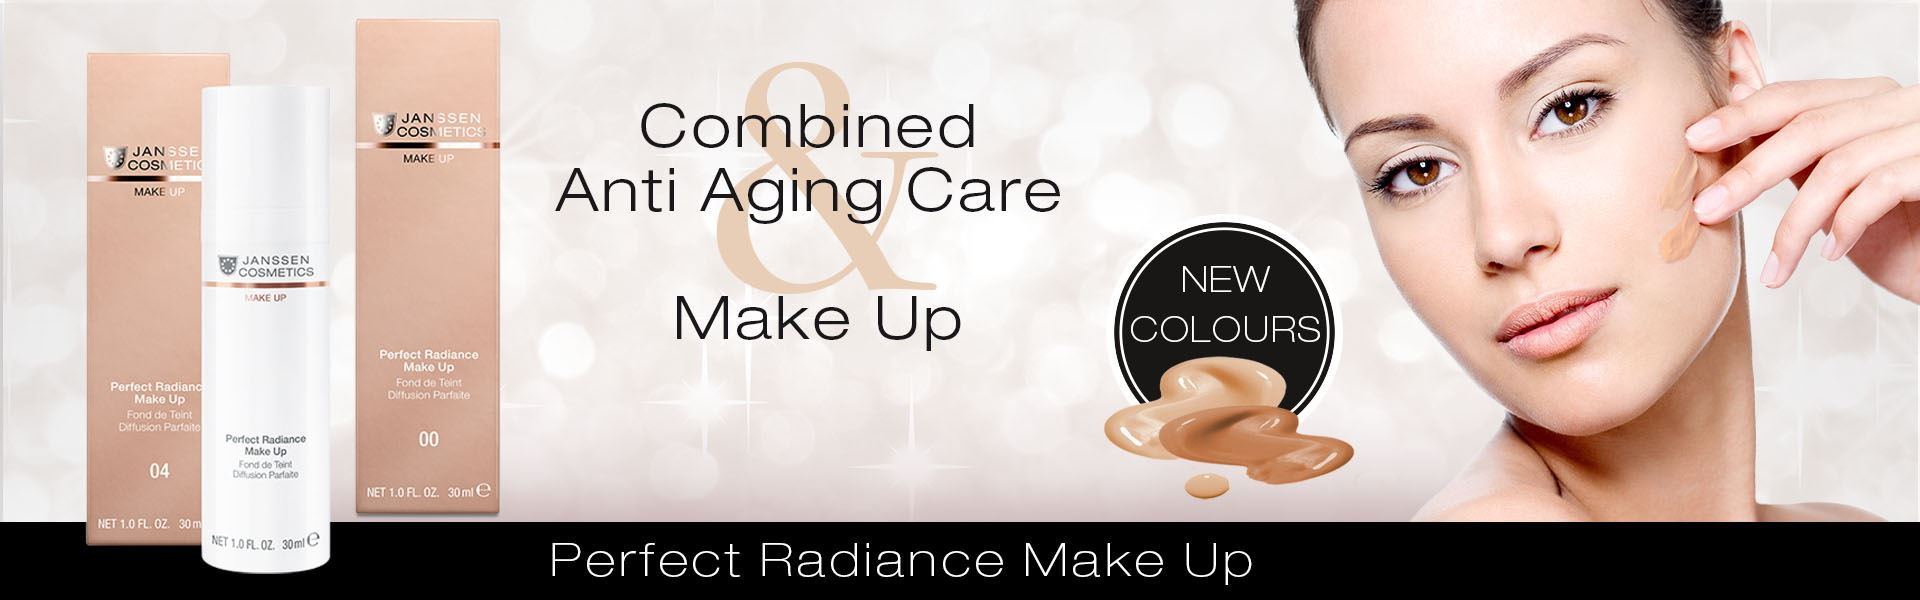 Perfect Radiance Make Up - Anti Ageing Care & Make-Up